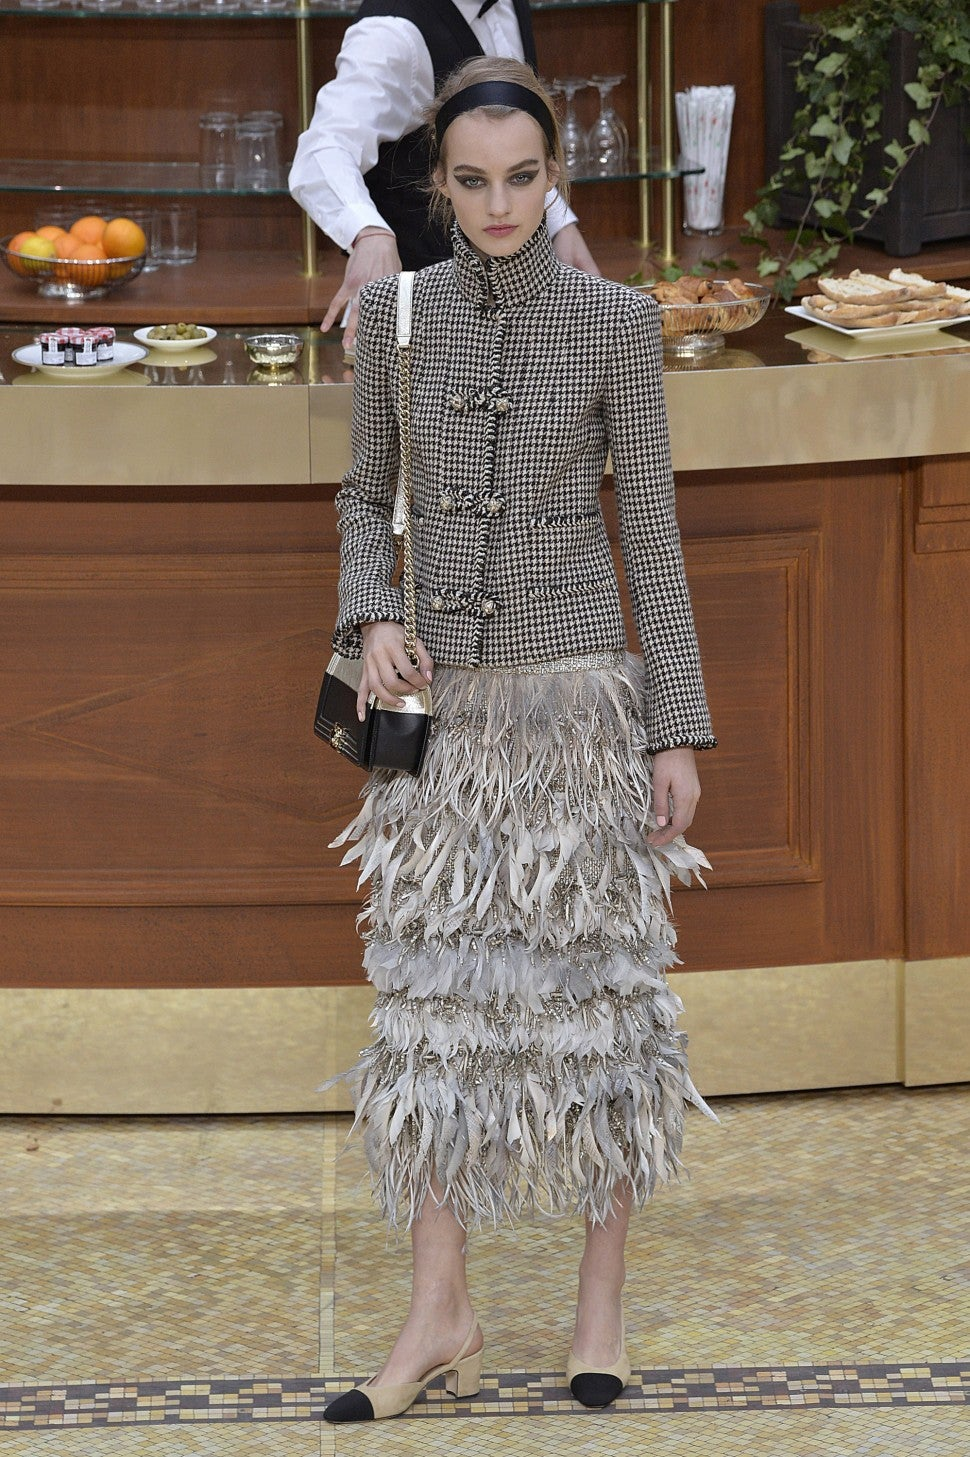 A model on the Chanel fall/winter 2015 runway.